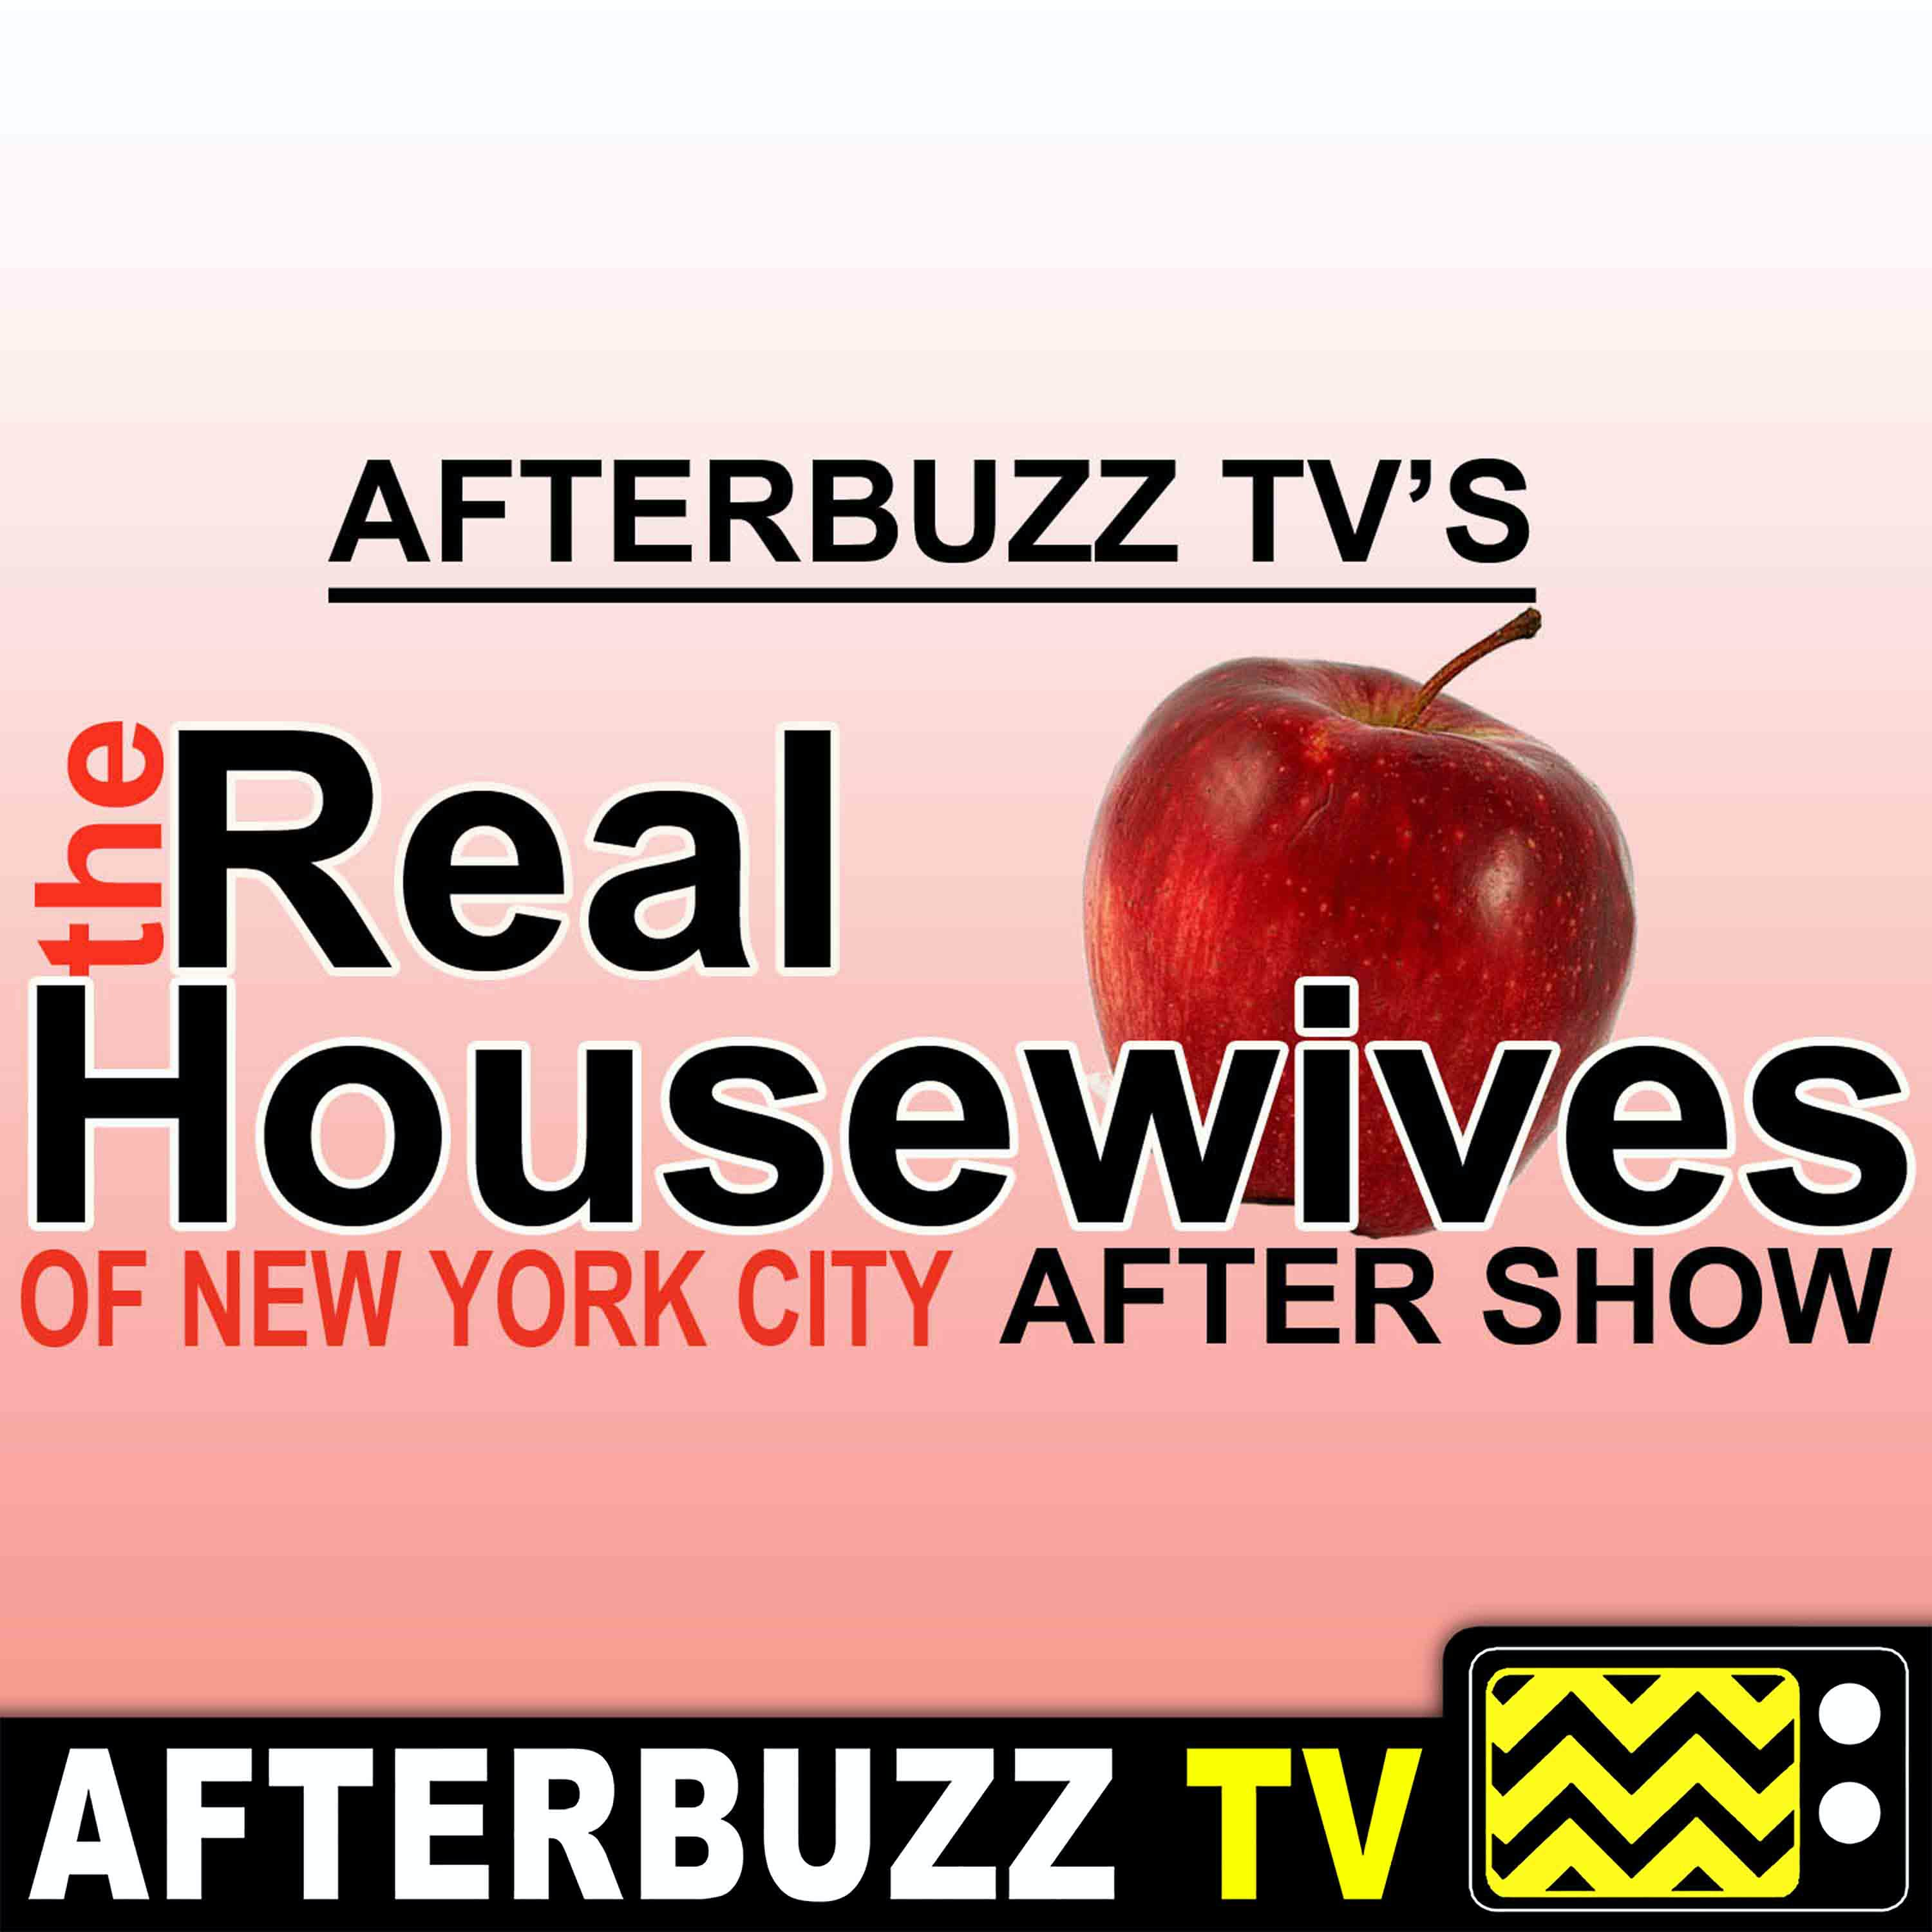 """""""It's Not You, It's Miami"""" Season 11 Episode 13 'Real Housewives of NYC' Review"""